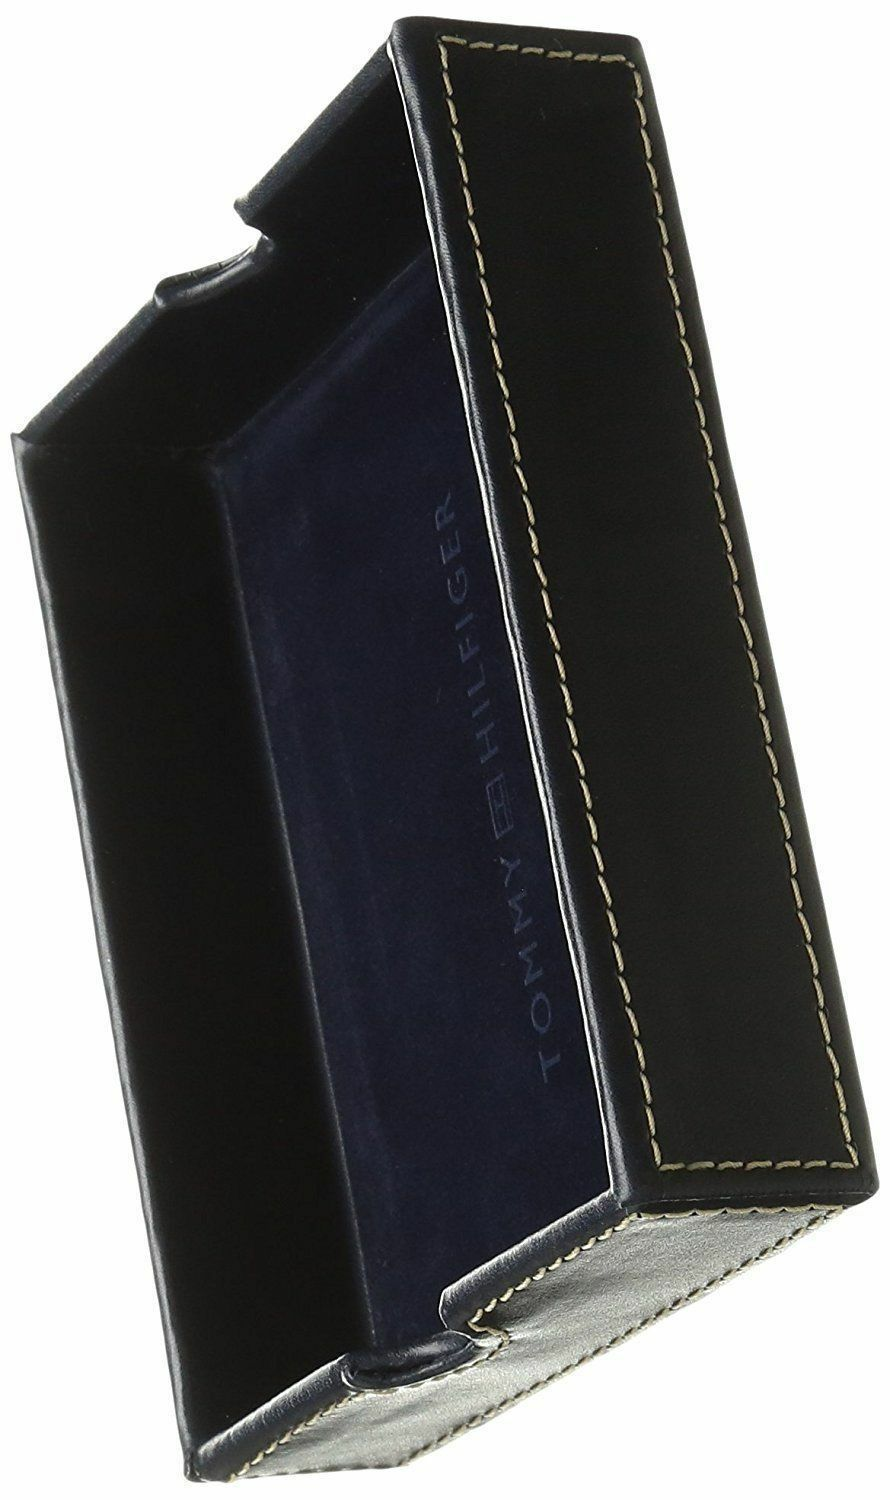 New Tommy Hilfiger Men's Leather Credit Card ID Passcase Wallet Black 31TL22X060 image 10